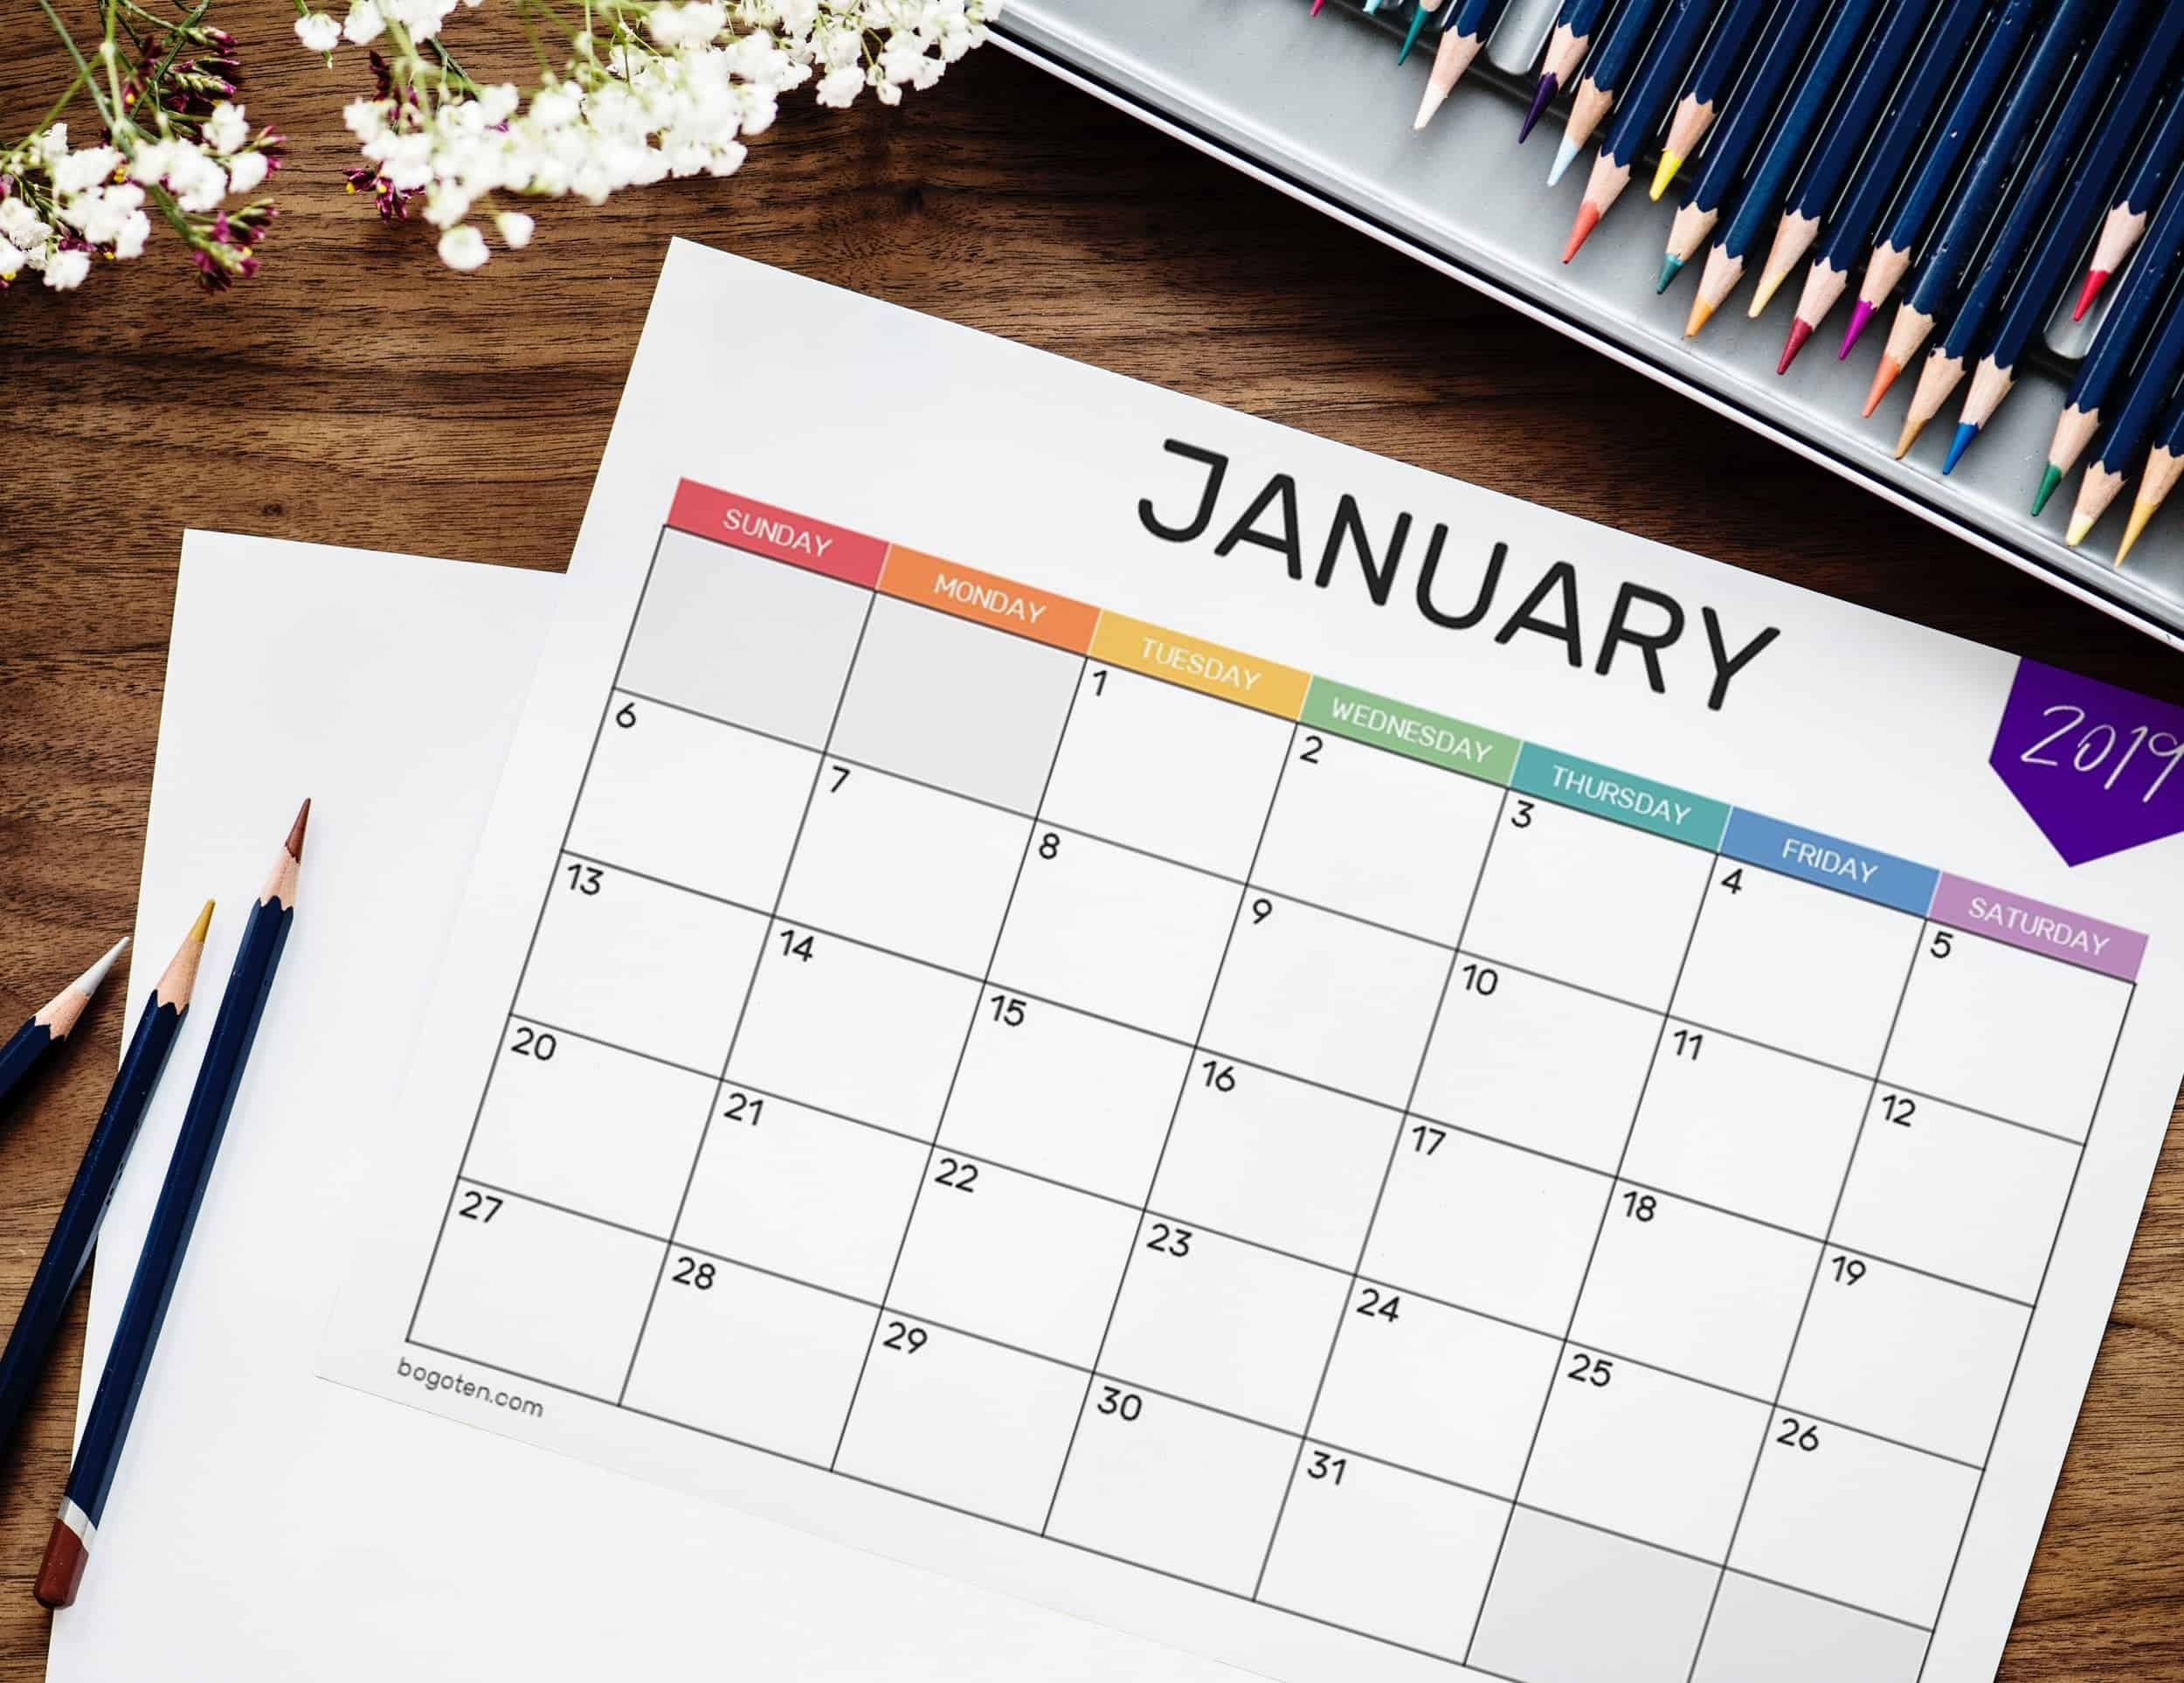 Free 2019 Printable Calendars throughout 2019 2020 Calendar Space To Write